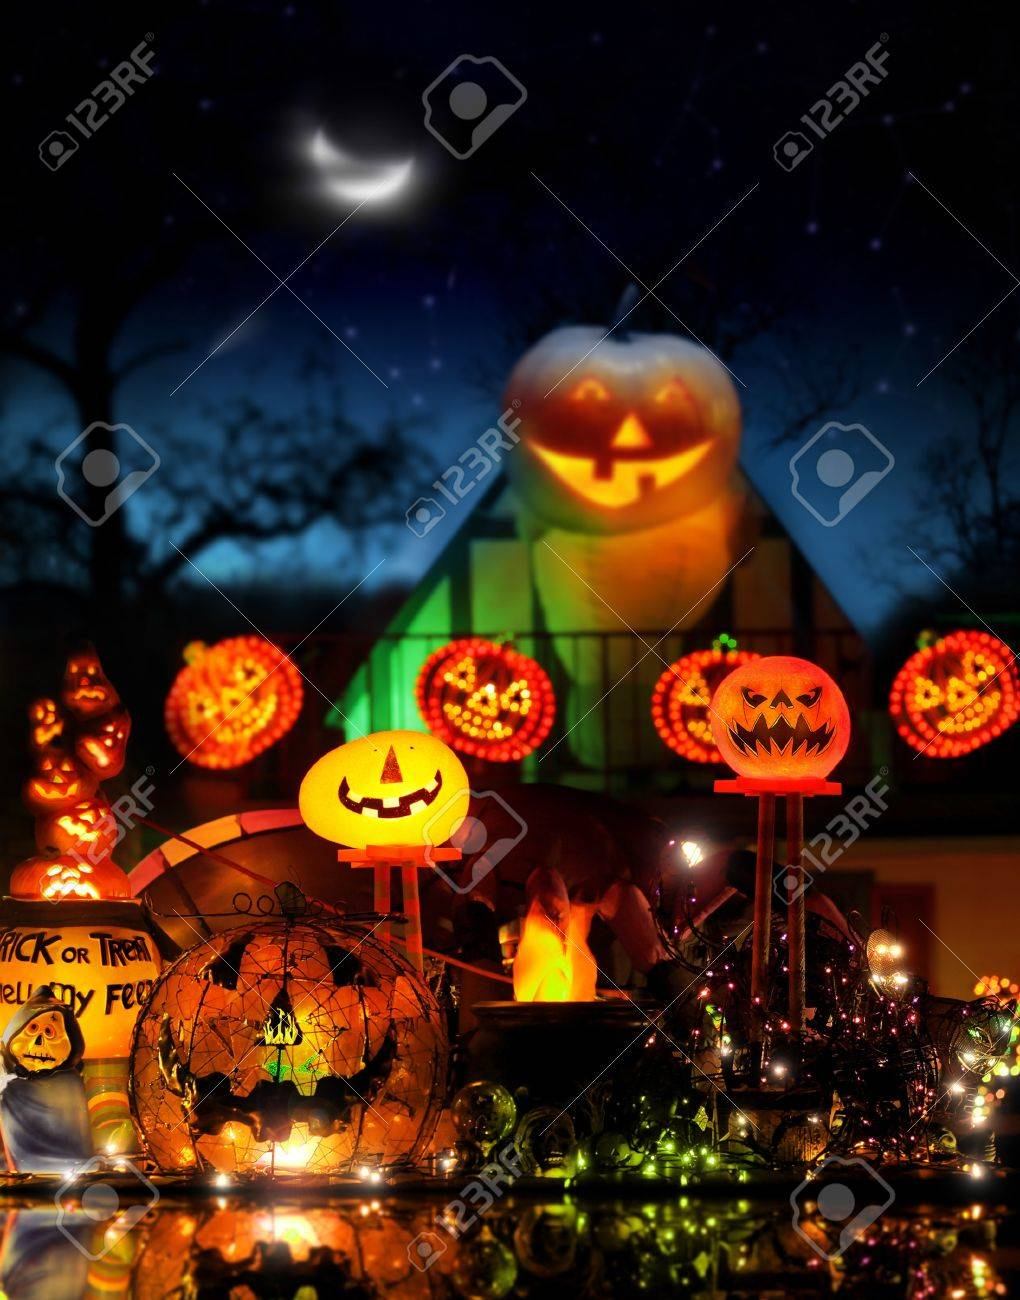 Happy Halloween image with lots of glowing jackolanterns in fantastical spooky environment Stock Photo - 11001311